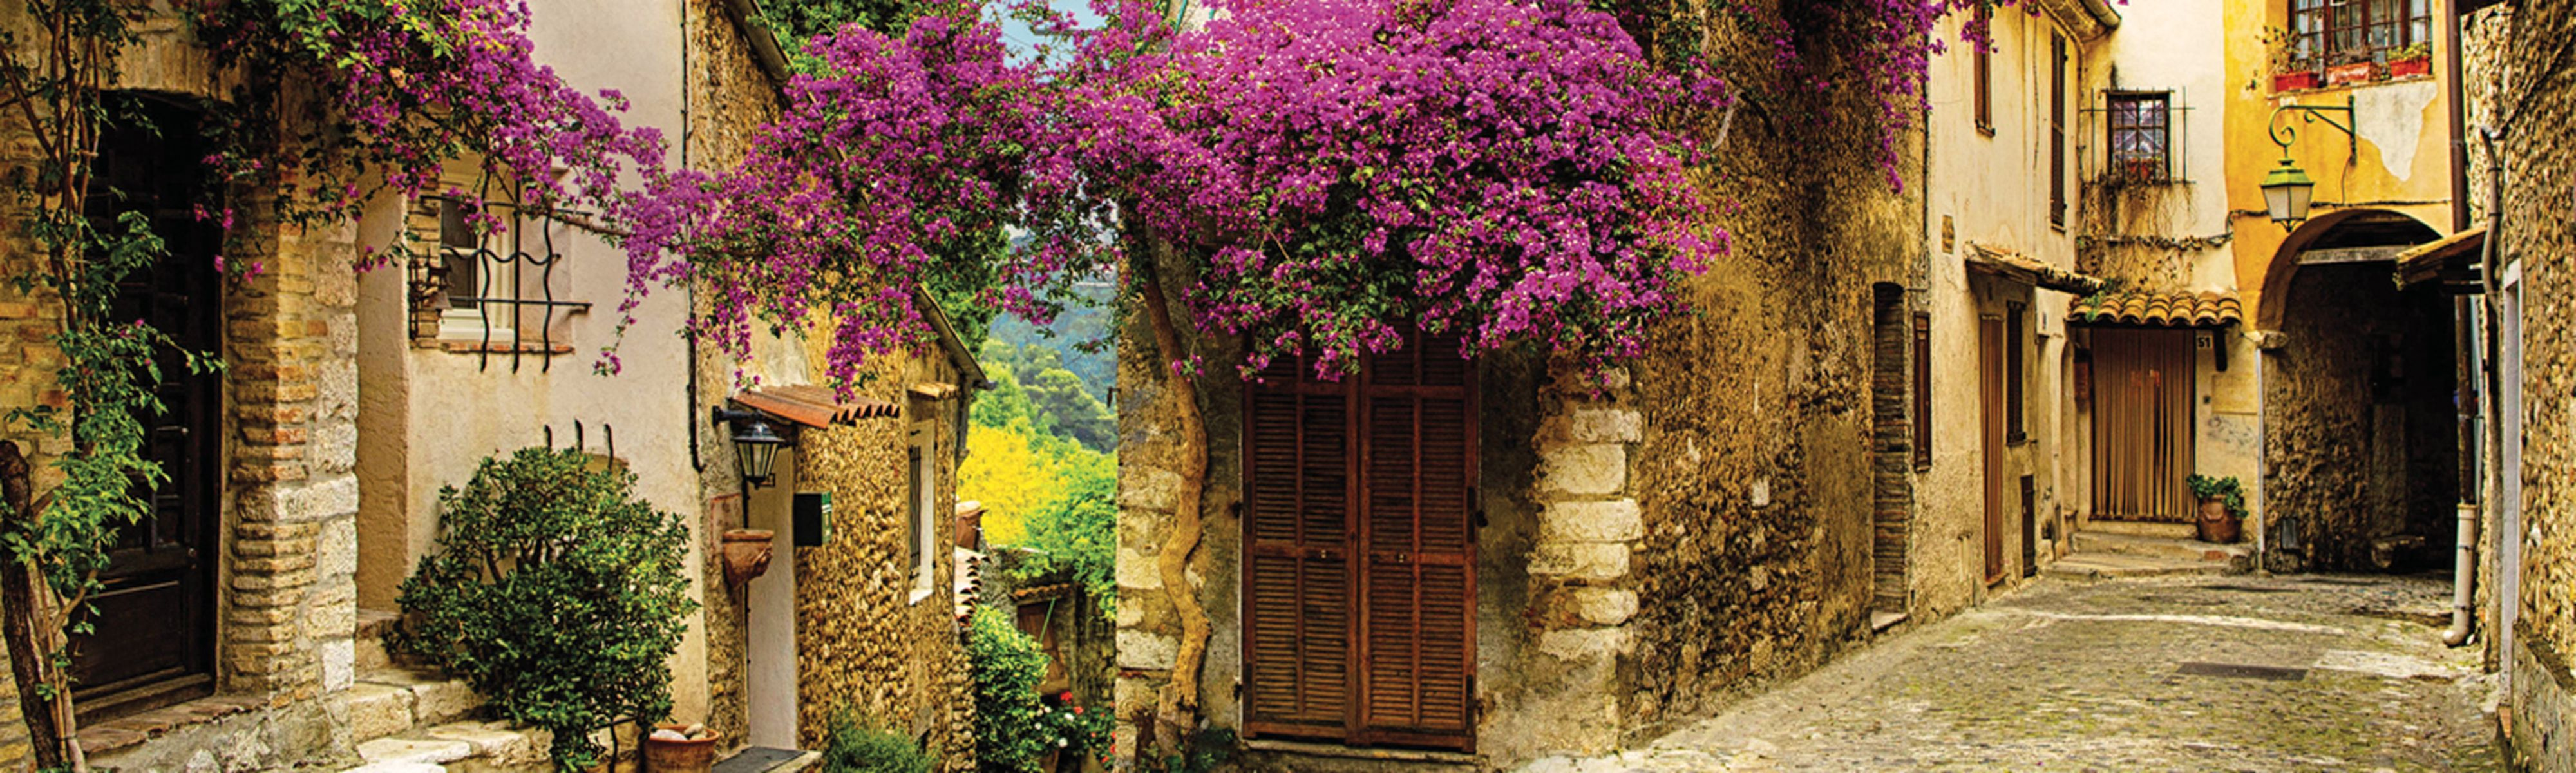 old building with purple overhanging flowers in provence, france